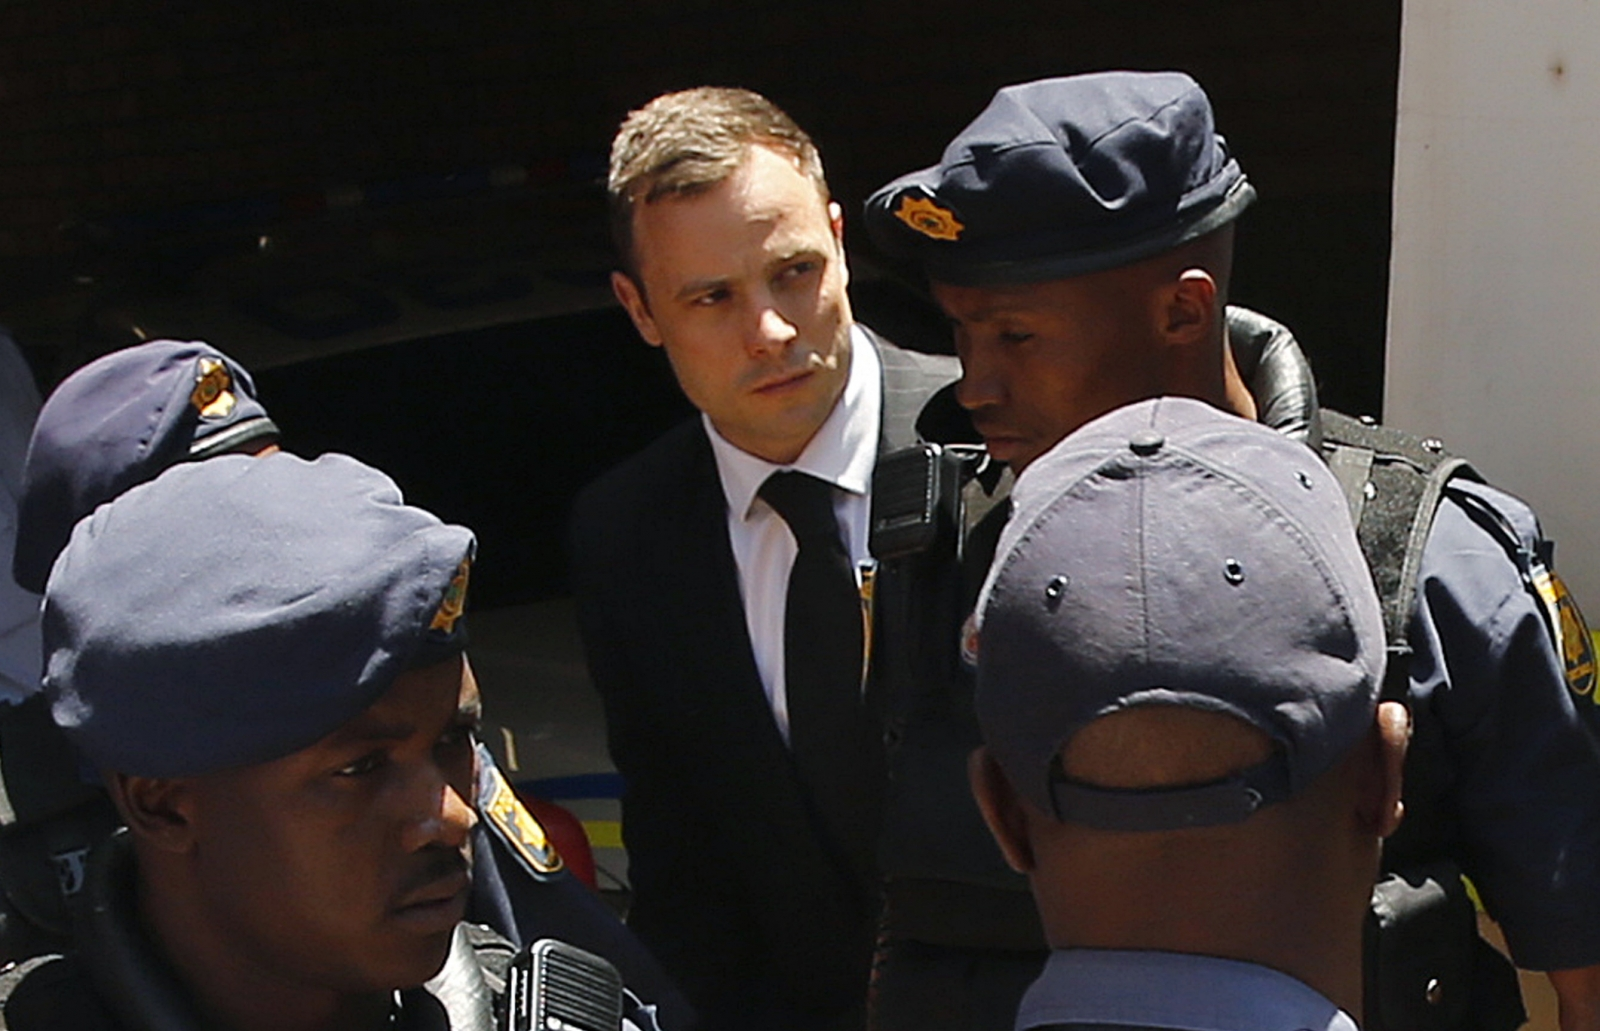 S. Africa Prosecution to Appeal Pistorius Conviction and Sentence